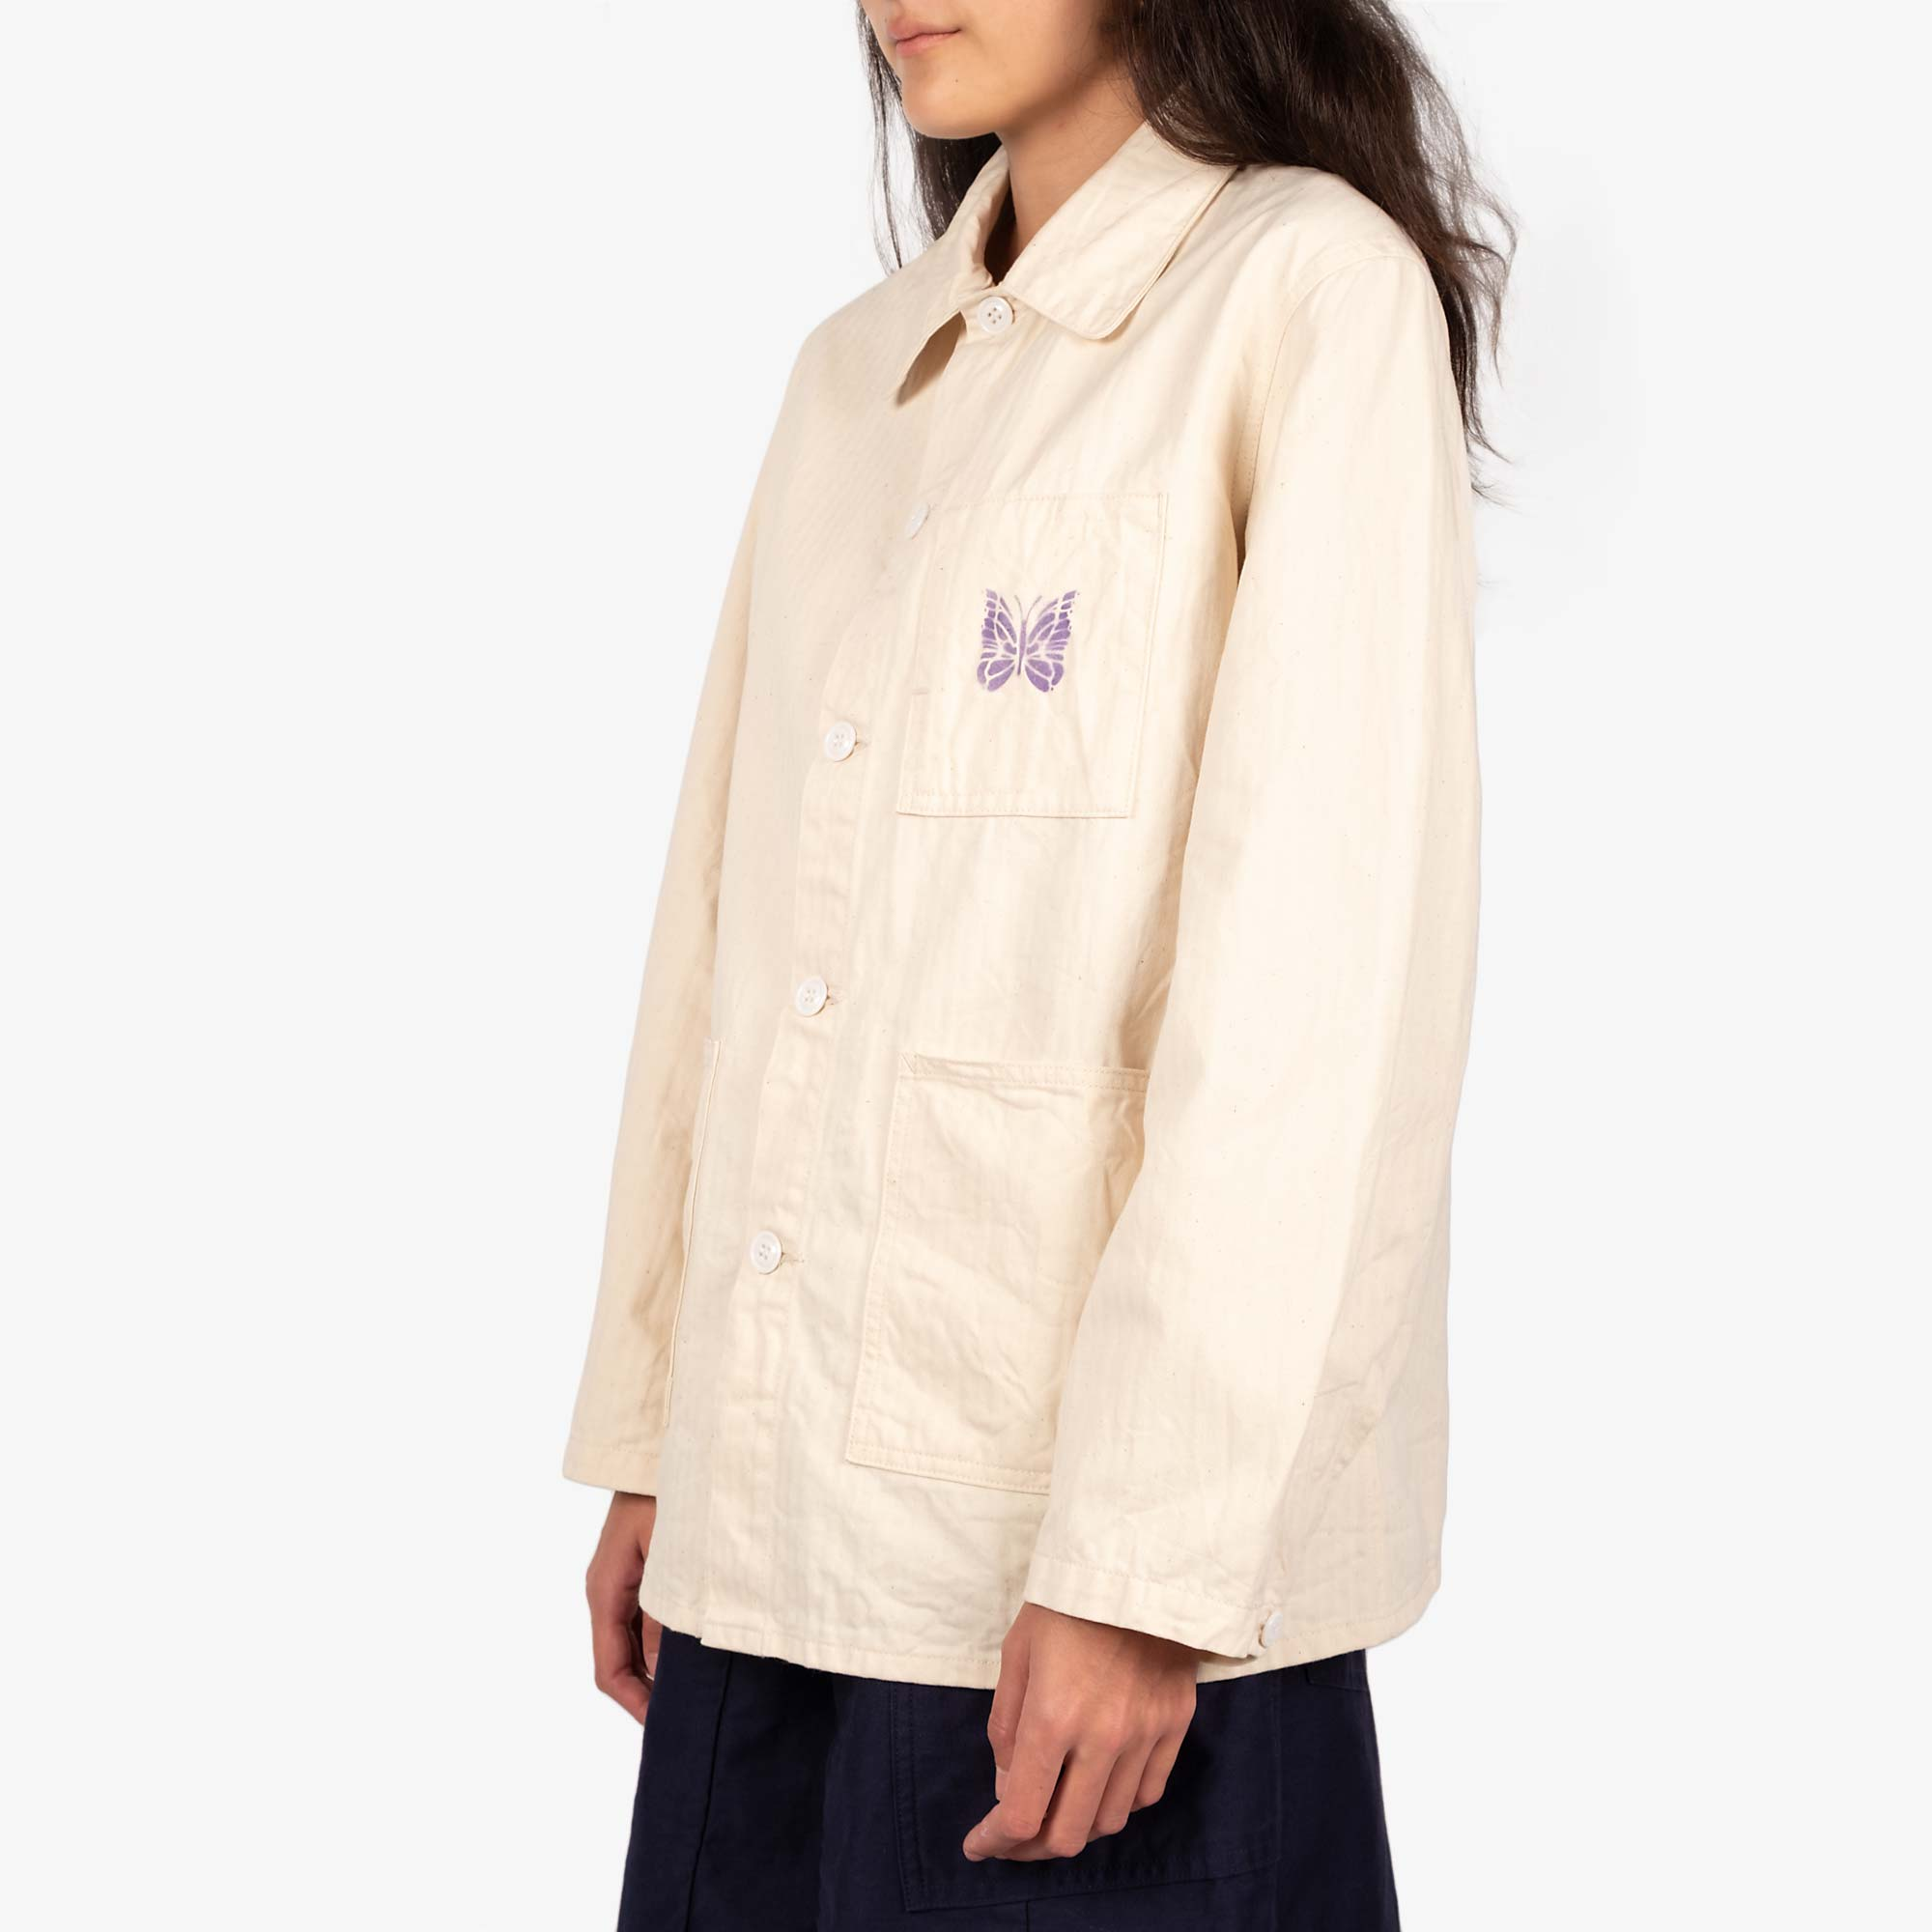 Needles Women's D.N. Coverall Jacket - Off White 3